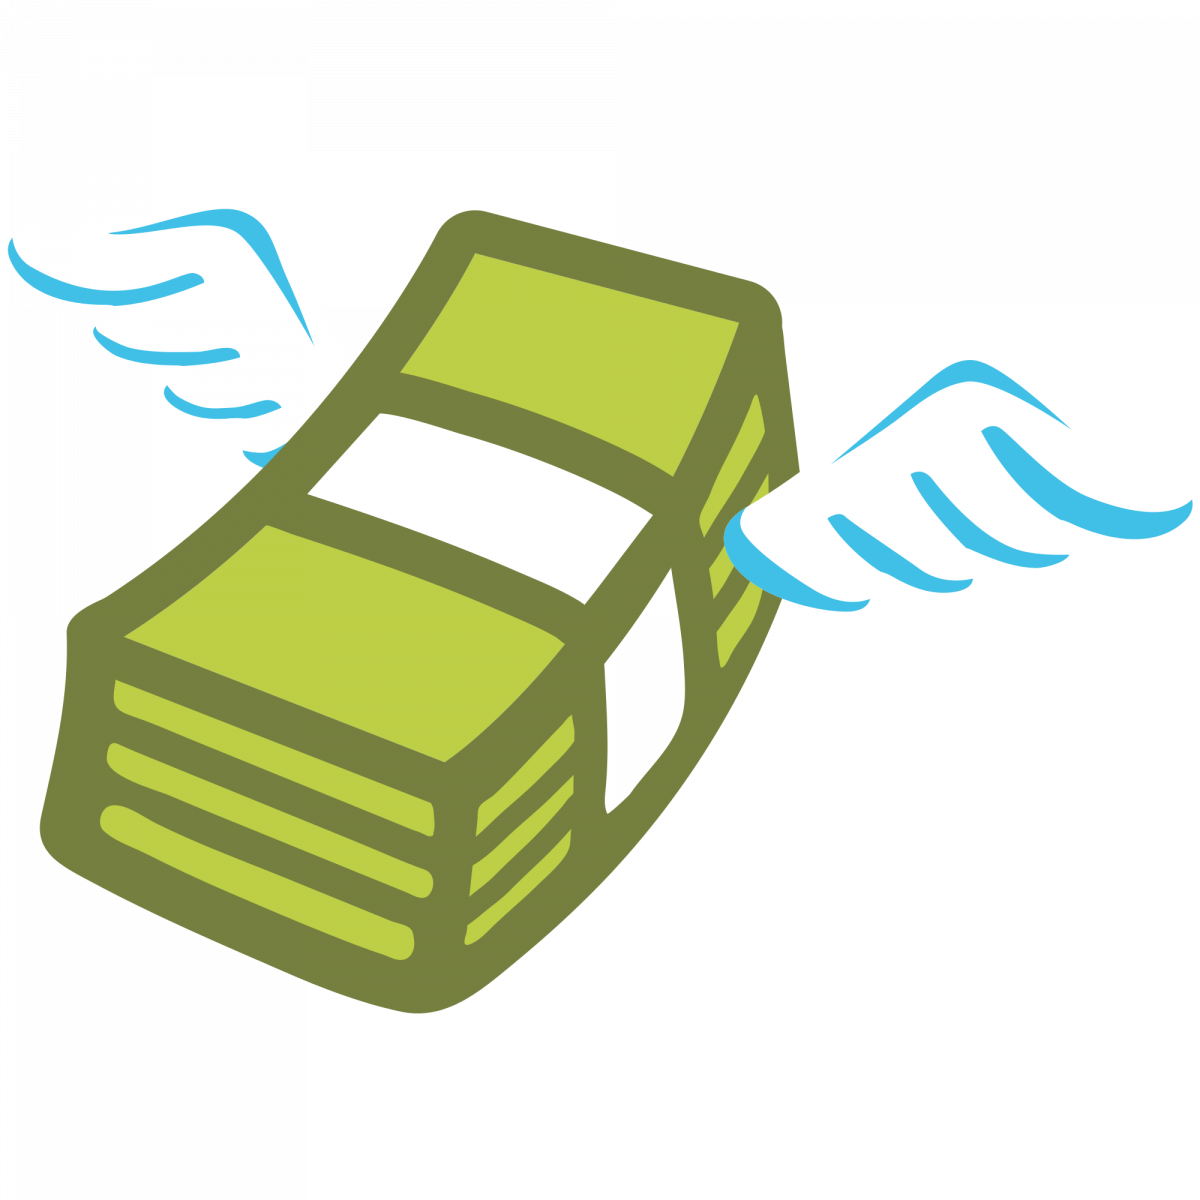 Money Dollar Sign Currency Android Emoji PNG Image